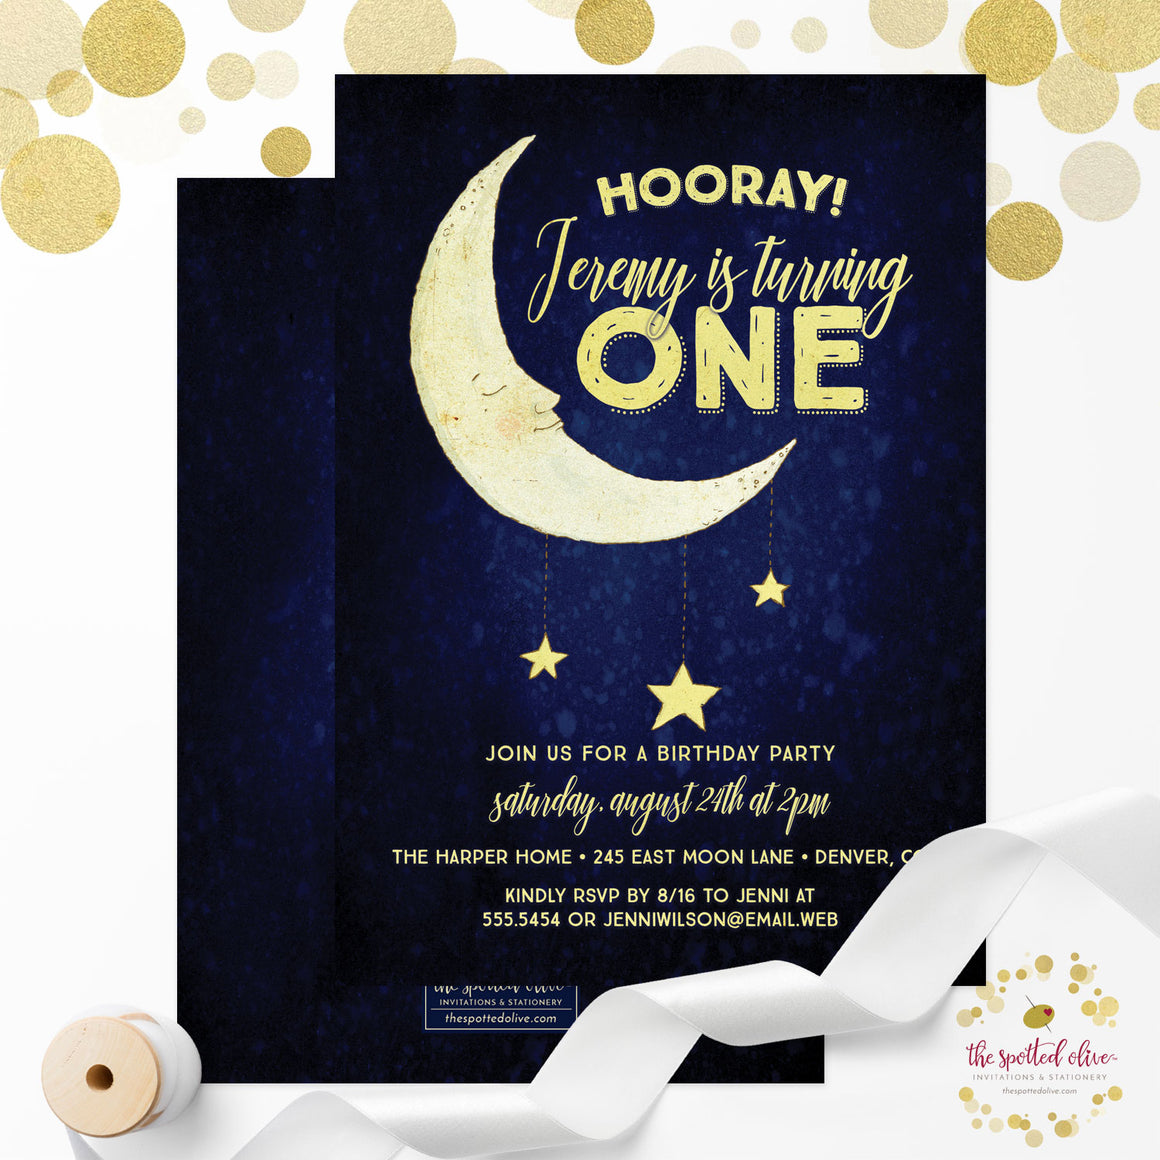 Kids Birthday Party Invitations - Moon & Stars, Blue